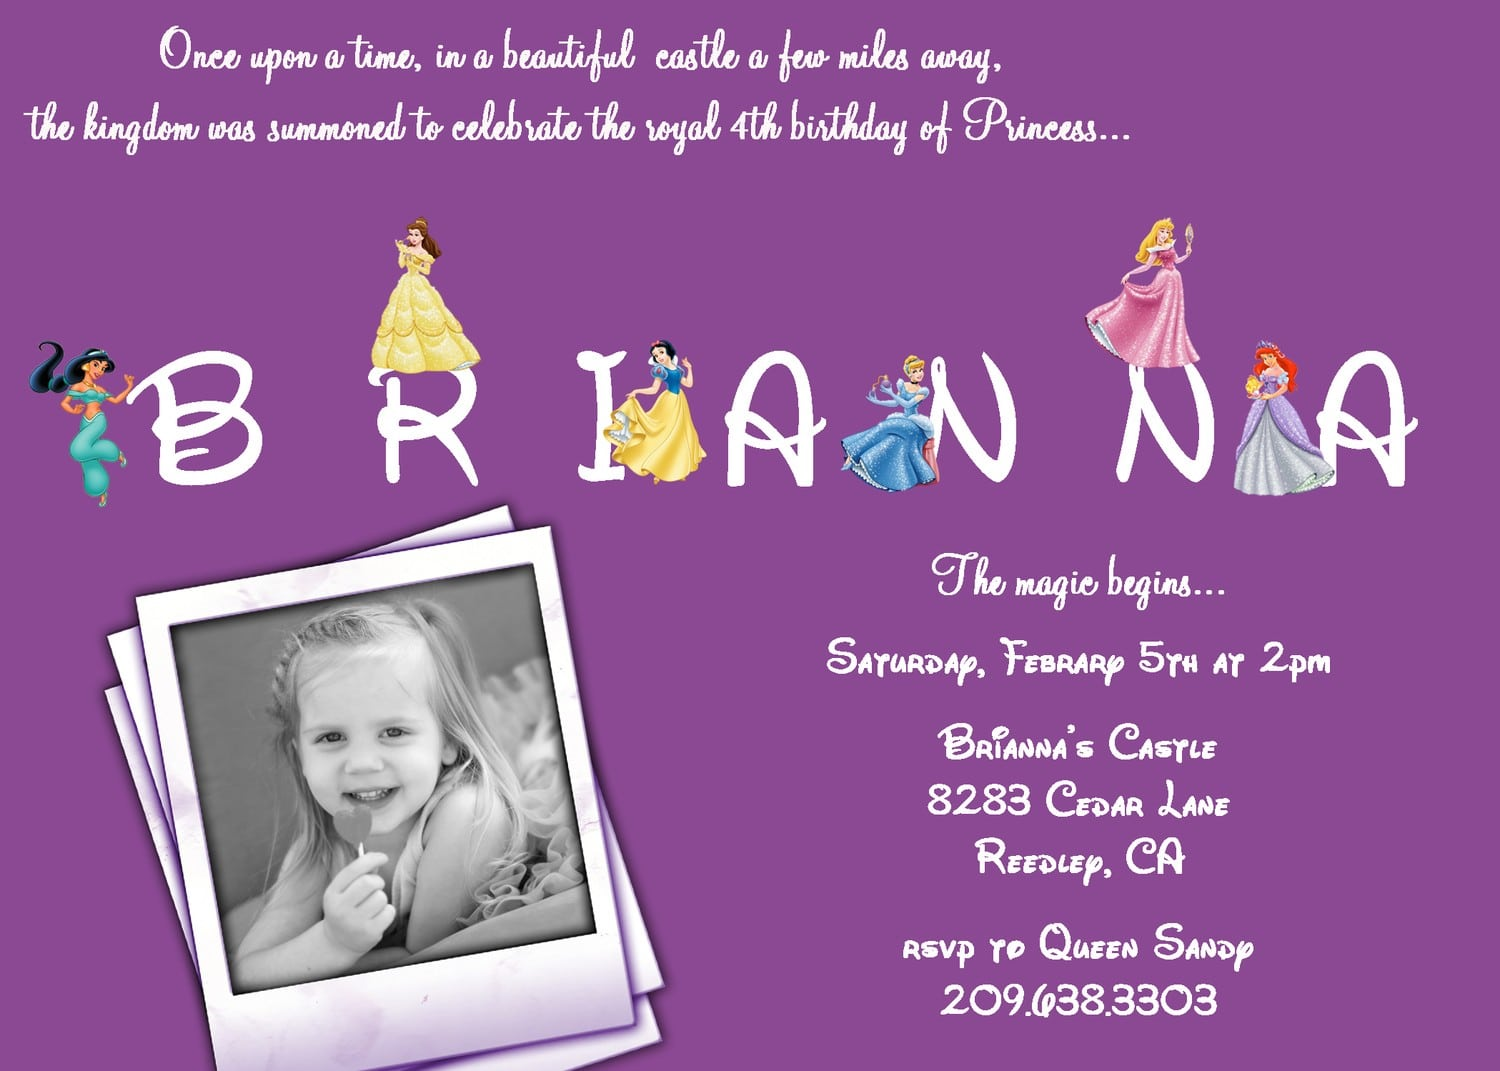 Disney Princess Invite Wording